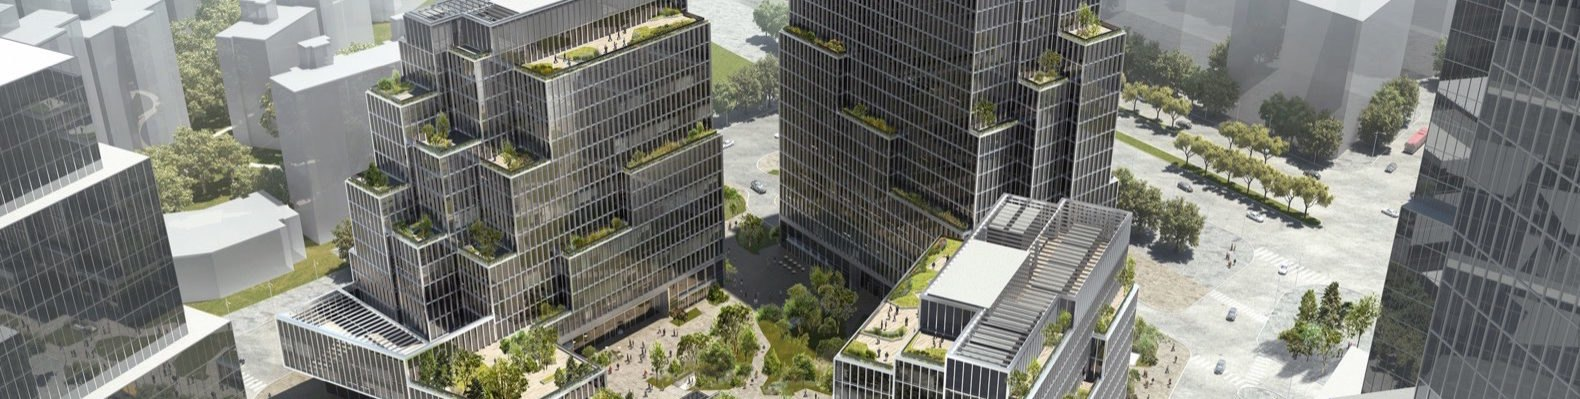 rendering of tall towers with terraces filled with plants